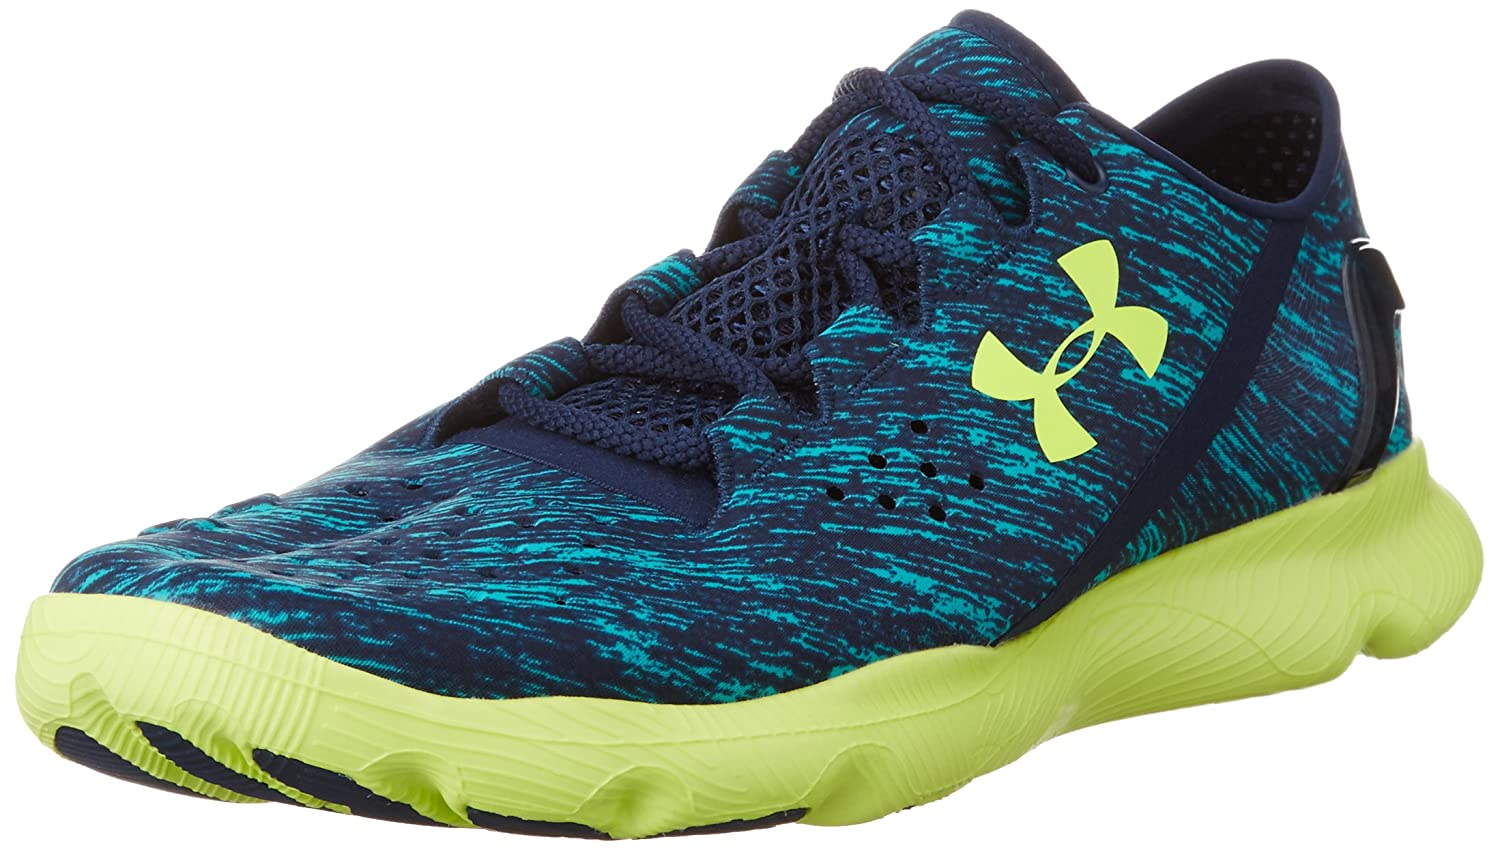 Under Armour SpeedForm Apollo Twist Running Shoes B00QJNU94E 12.5 D(M) US|Pacific/Academy/High-Vis Yellow